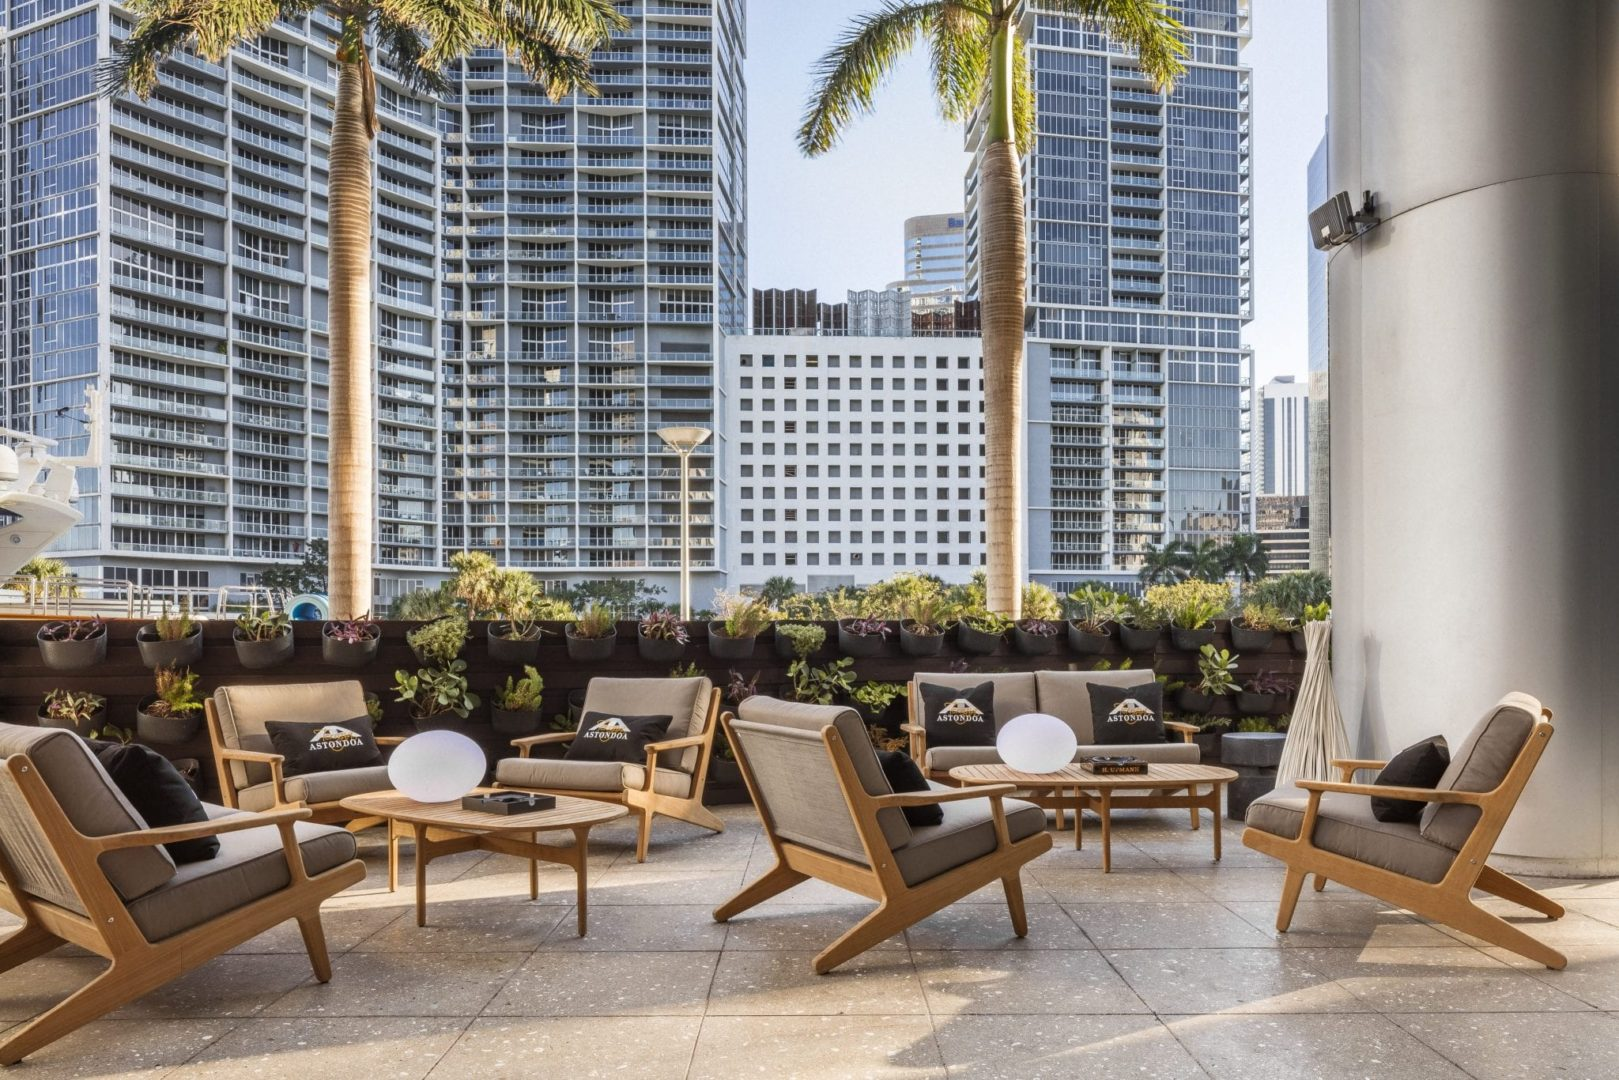 Maison F P Journe Opens At Epic Hotel Miami House Tipster